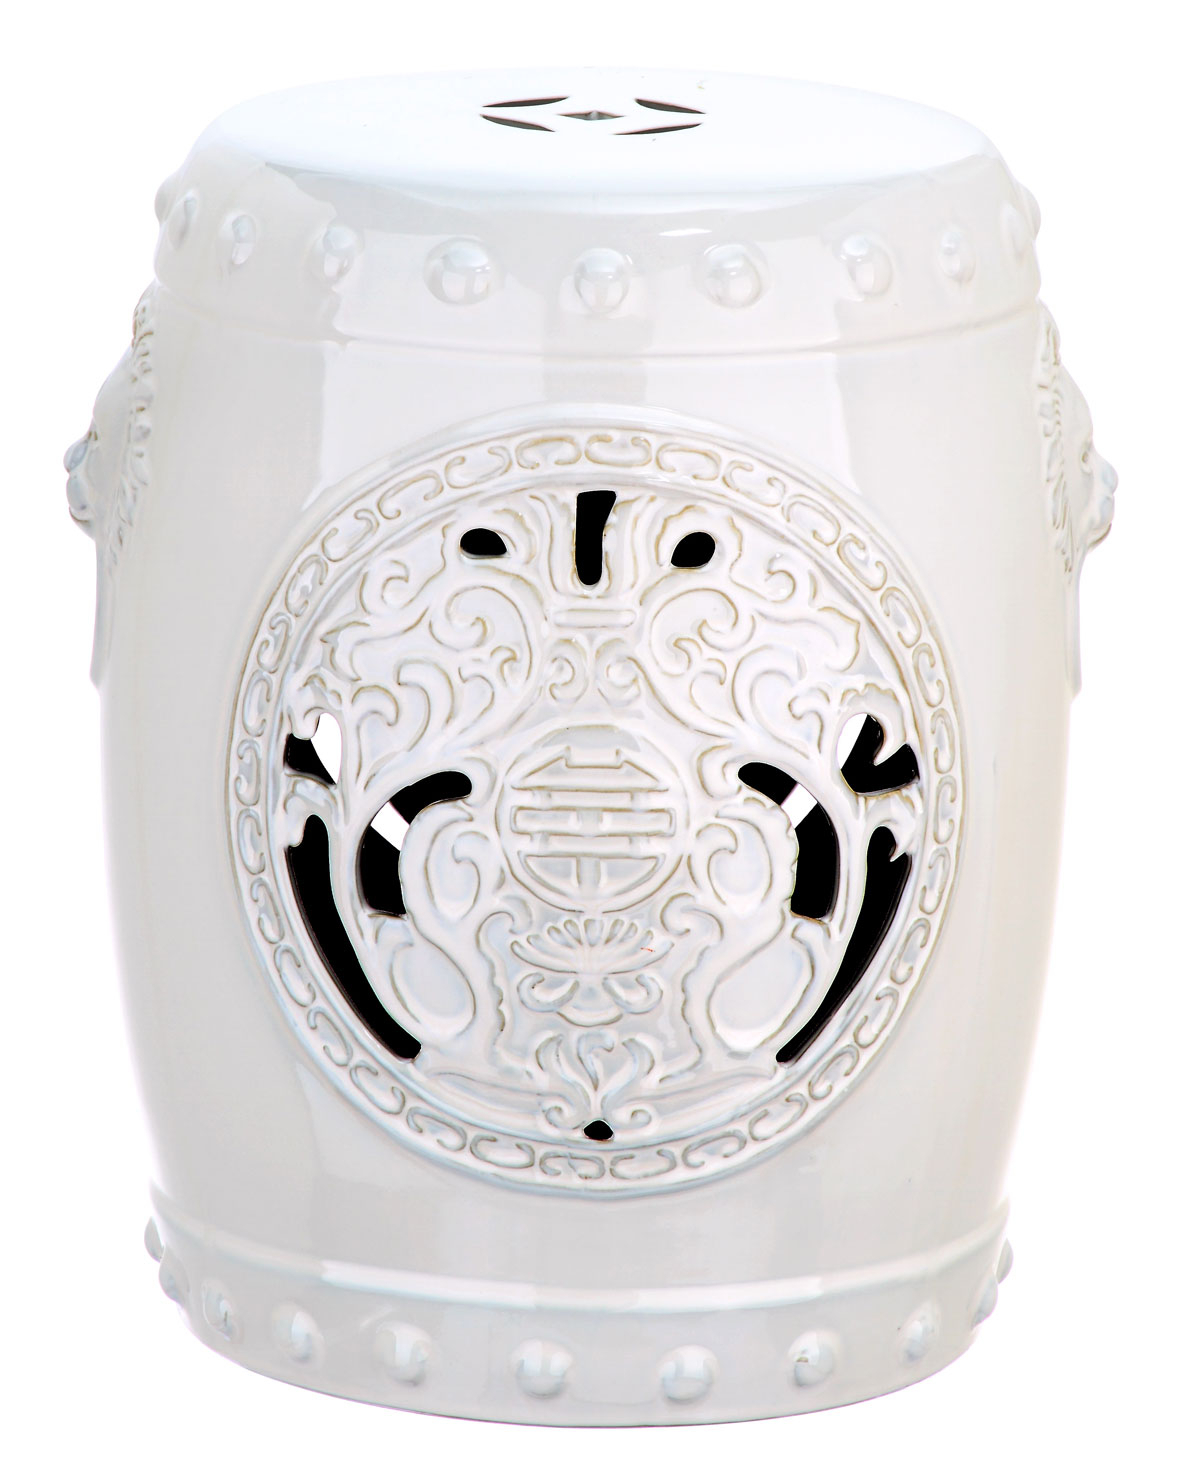 Well Known Dragon Garden Stools Intended For Acs4533b Garden Stools – Safavieh (View 12 of 30)